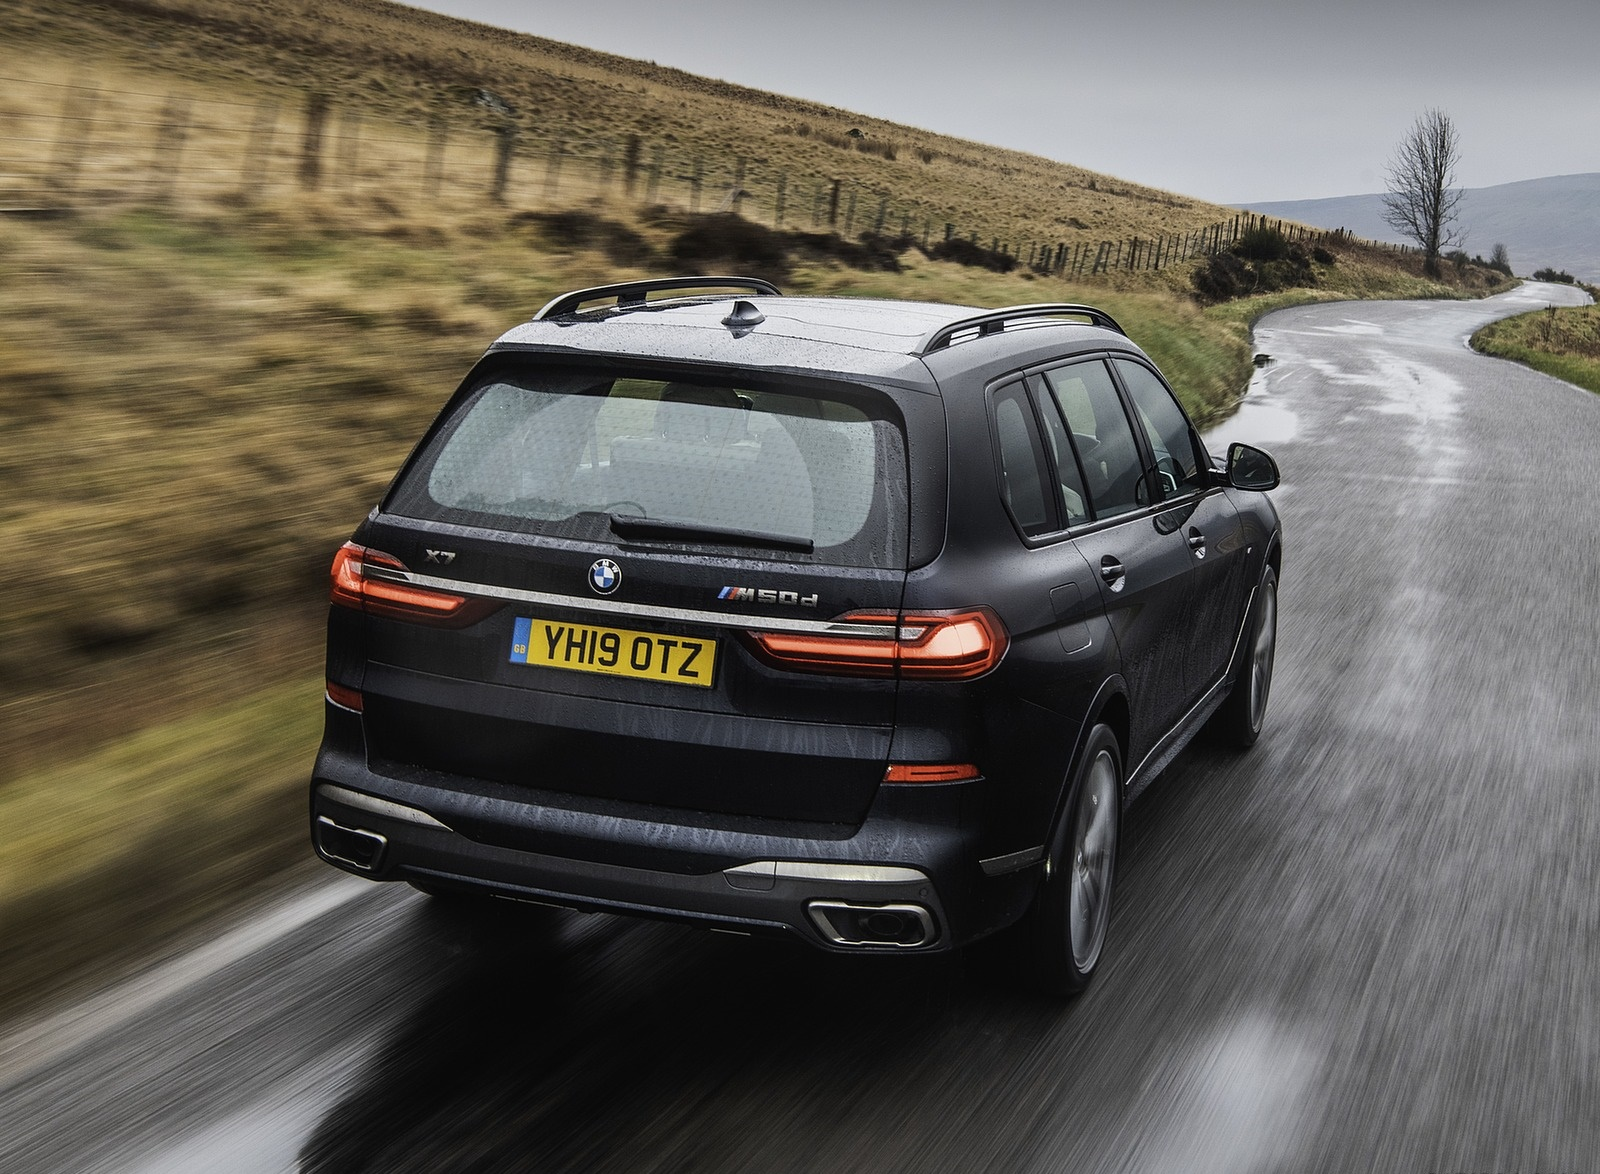 2019 BMW X7 M50d (UK-Spec) Rear Wallpapers (11)